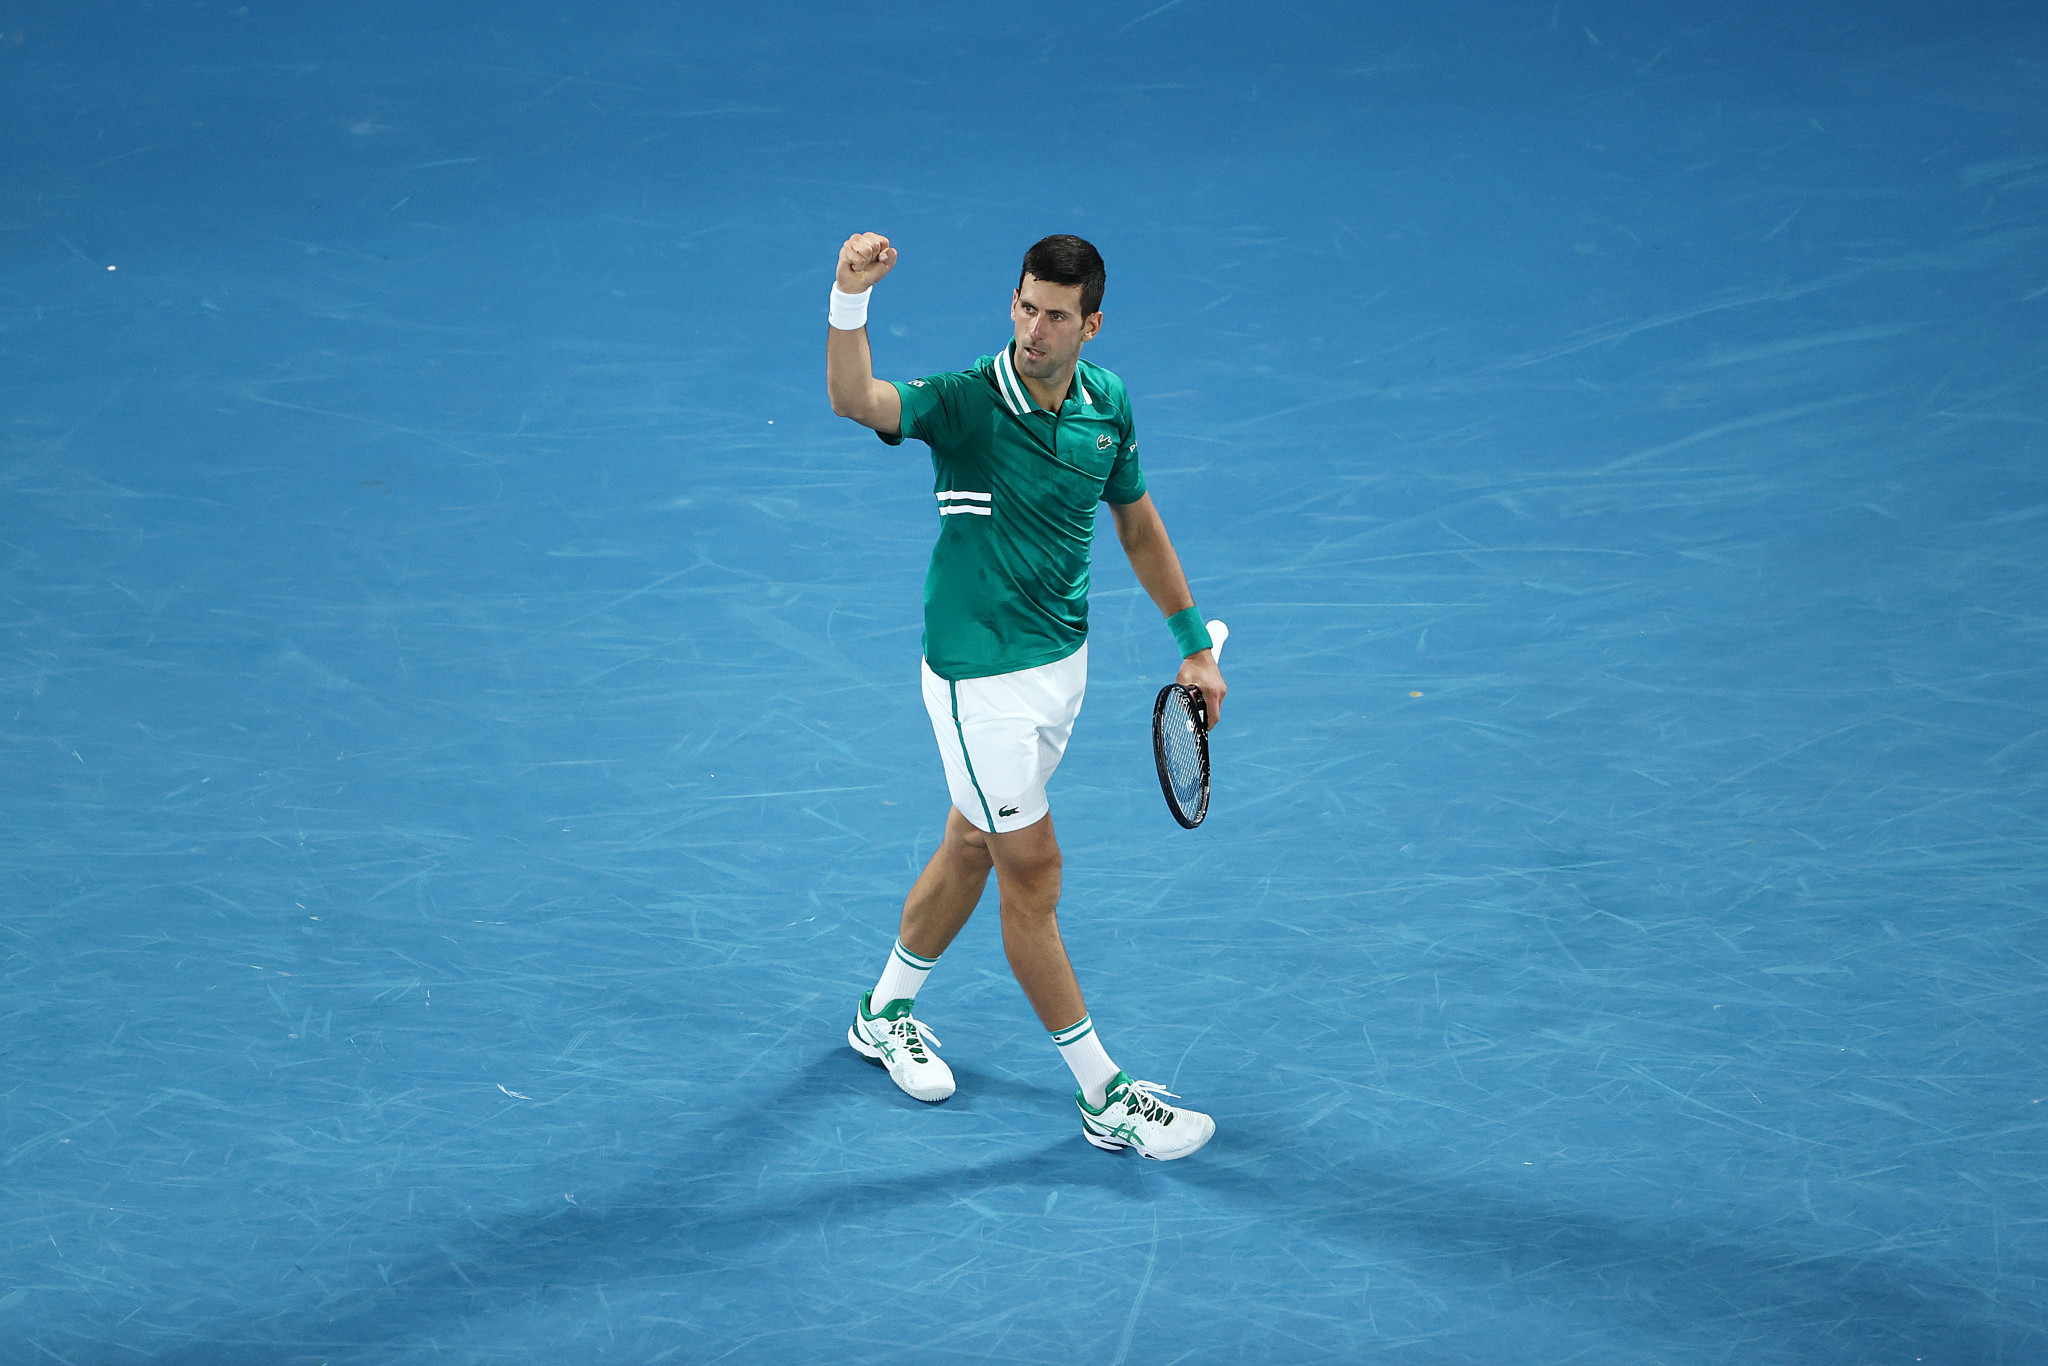 In the men's singles, world number one Novak Djokovic booked a place in the semi-finals ©Getty Images